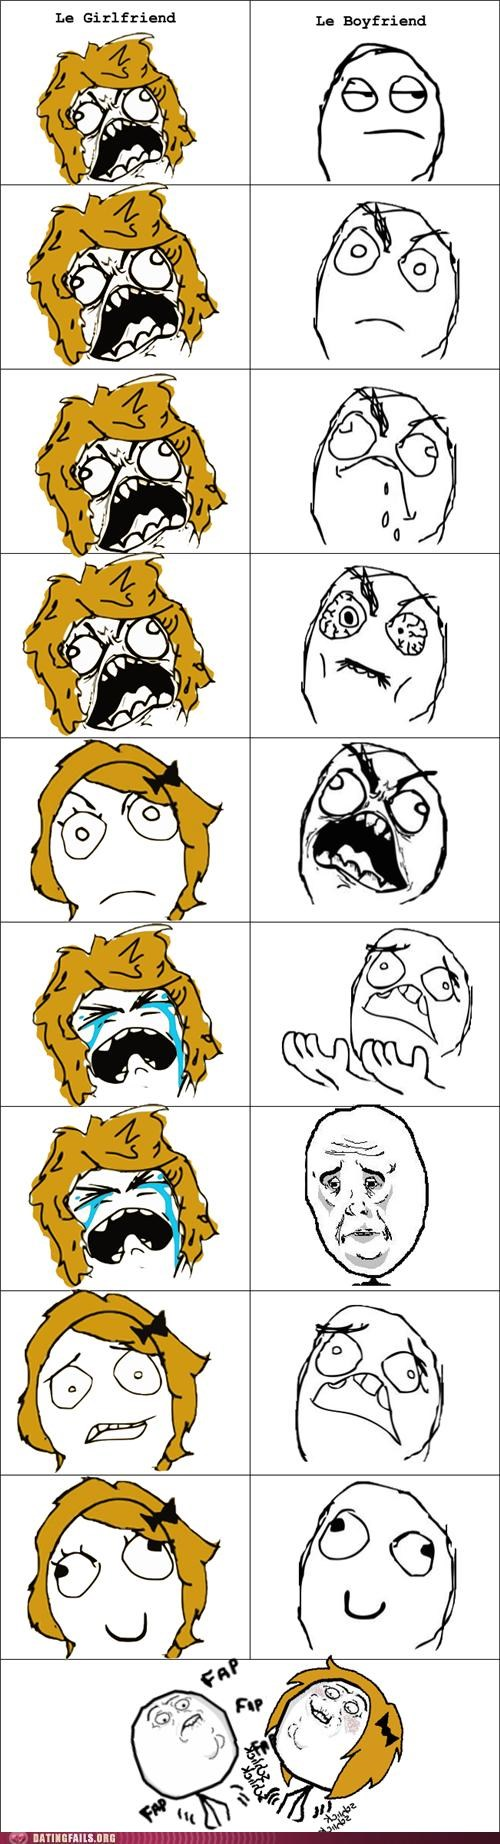 arguing argument comic rage comic spat We Are Dating - 5117362176